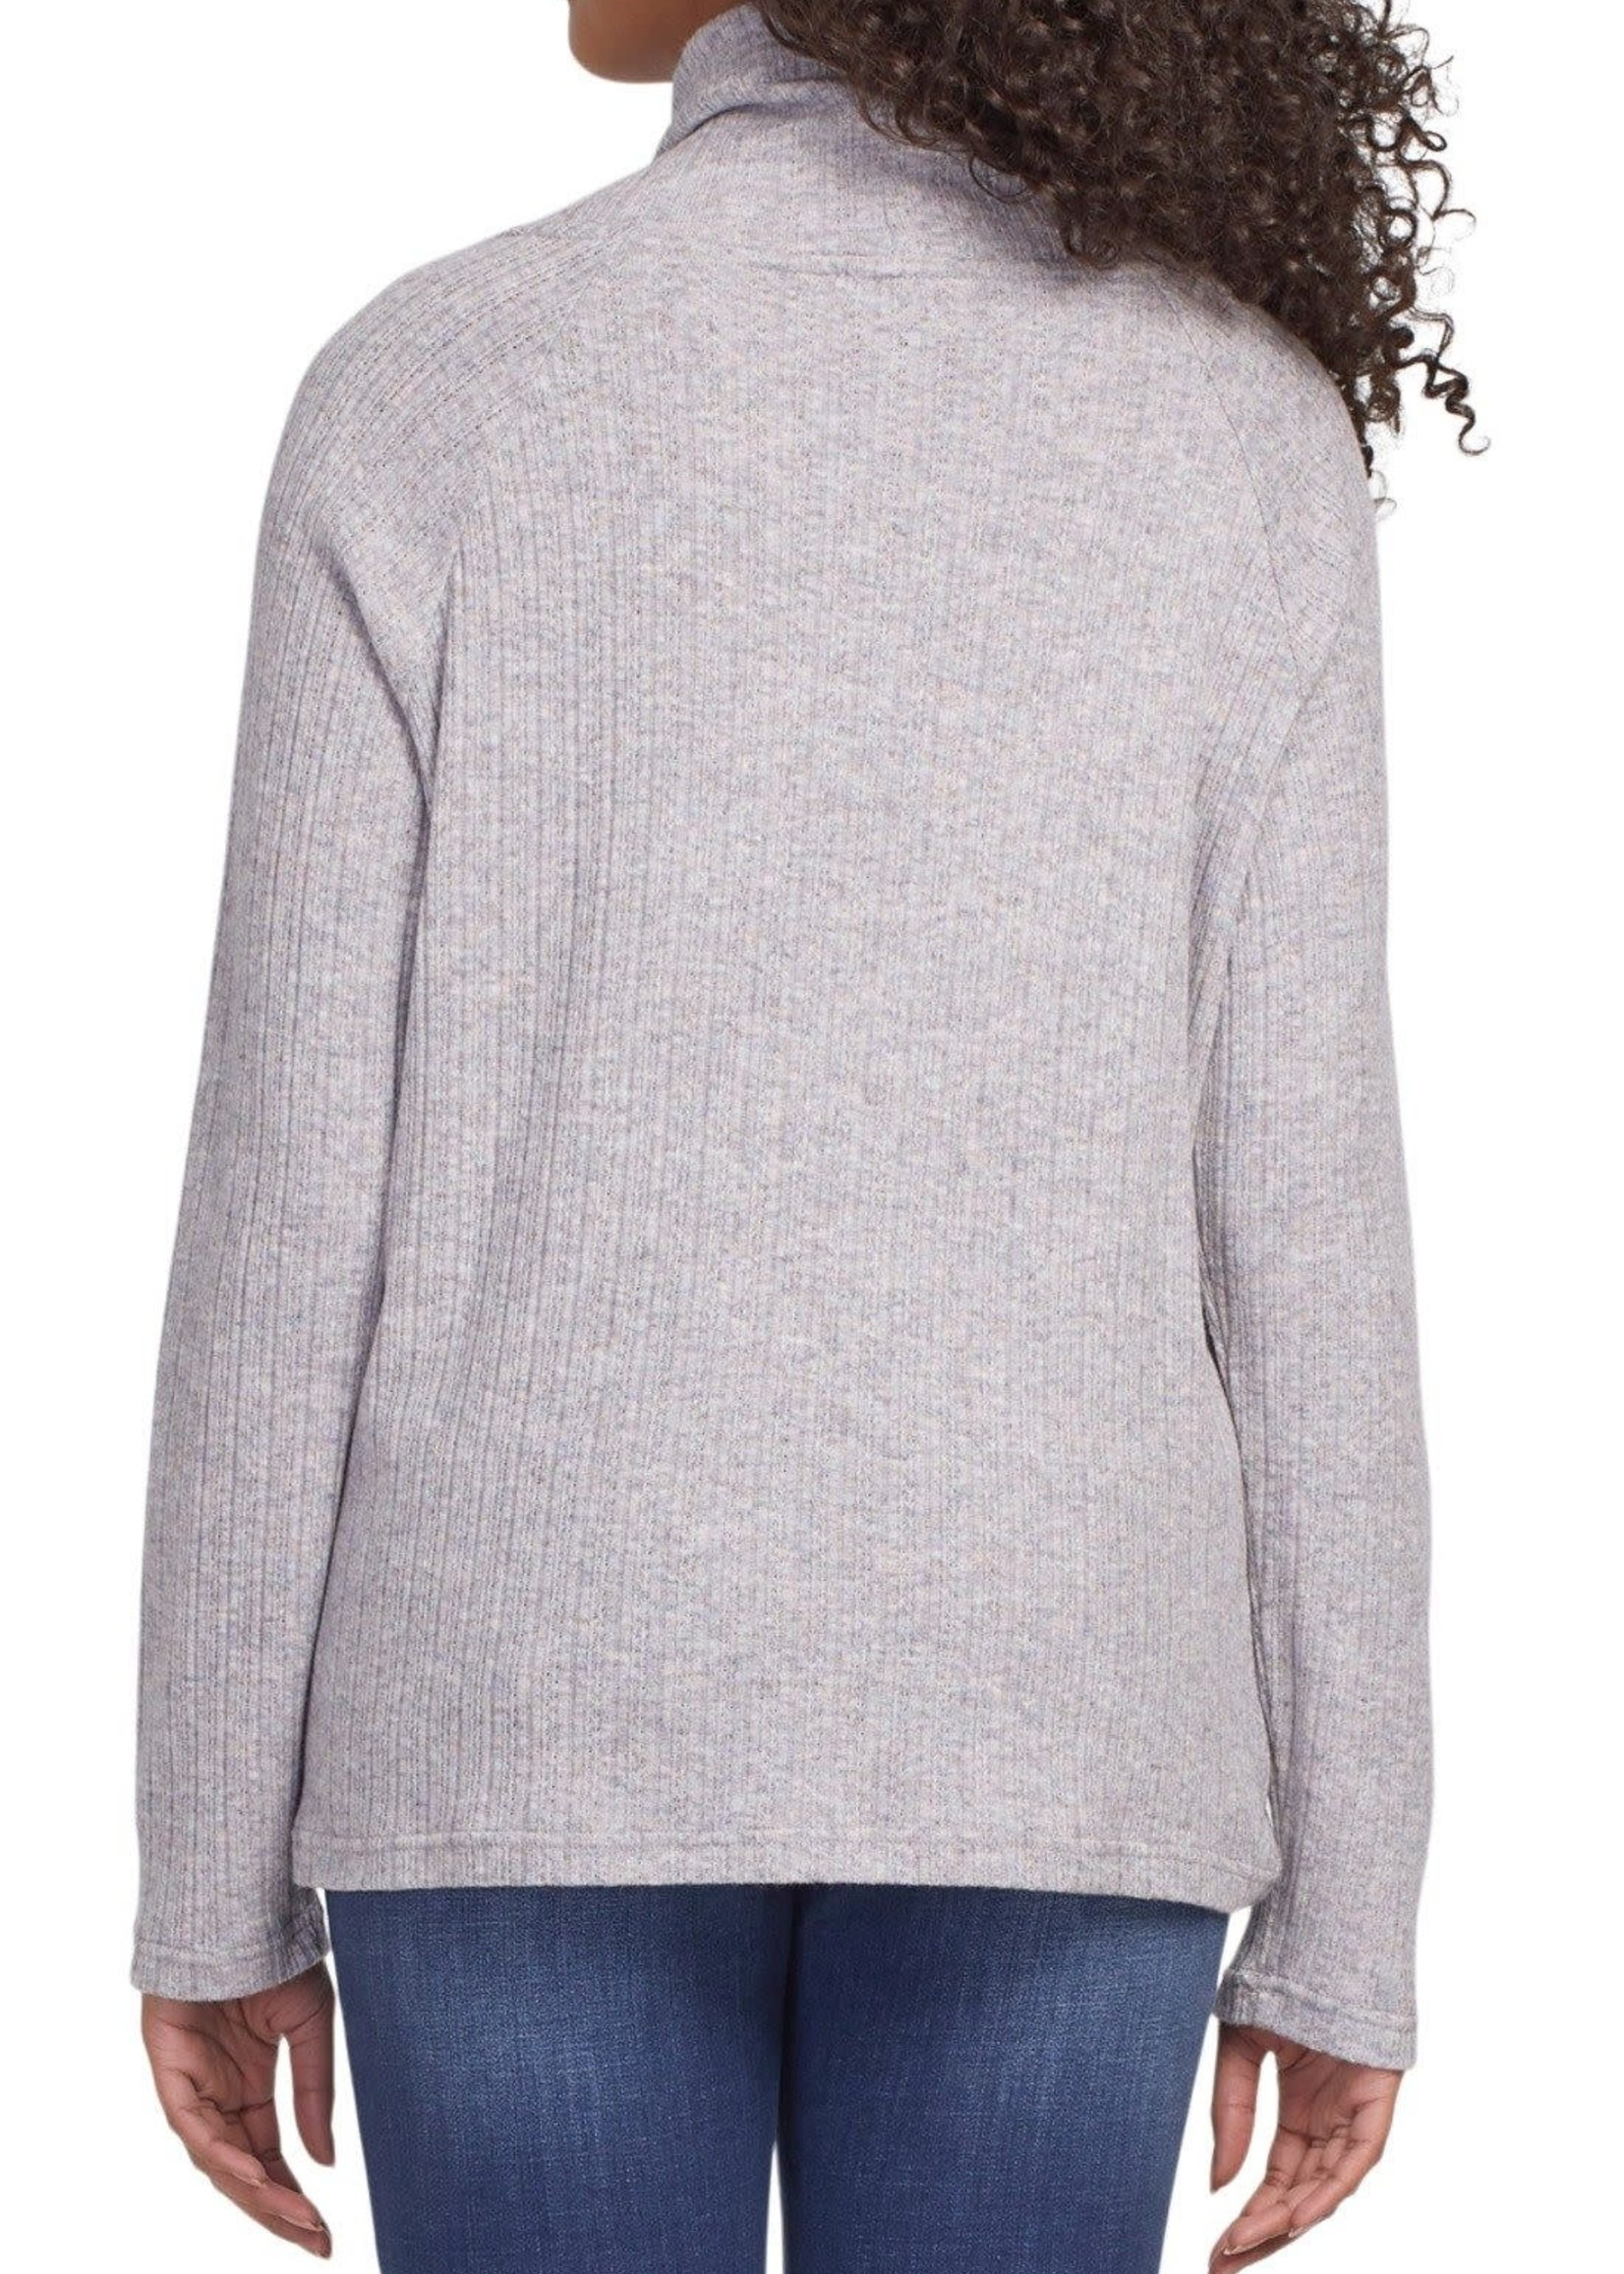 Tribal Tribal L/S Funnel Neck Top Grey Mix